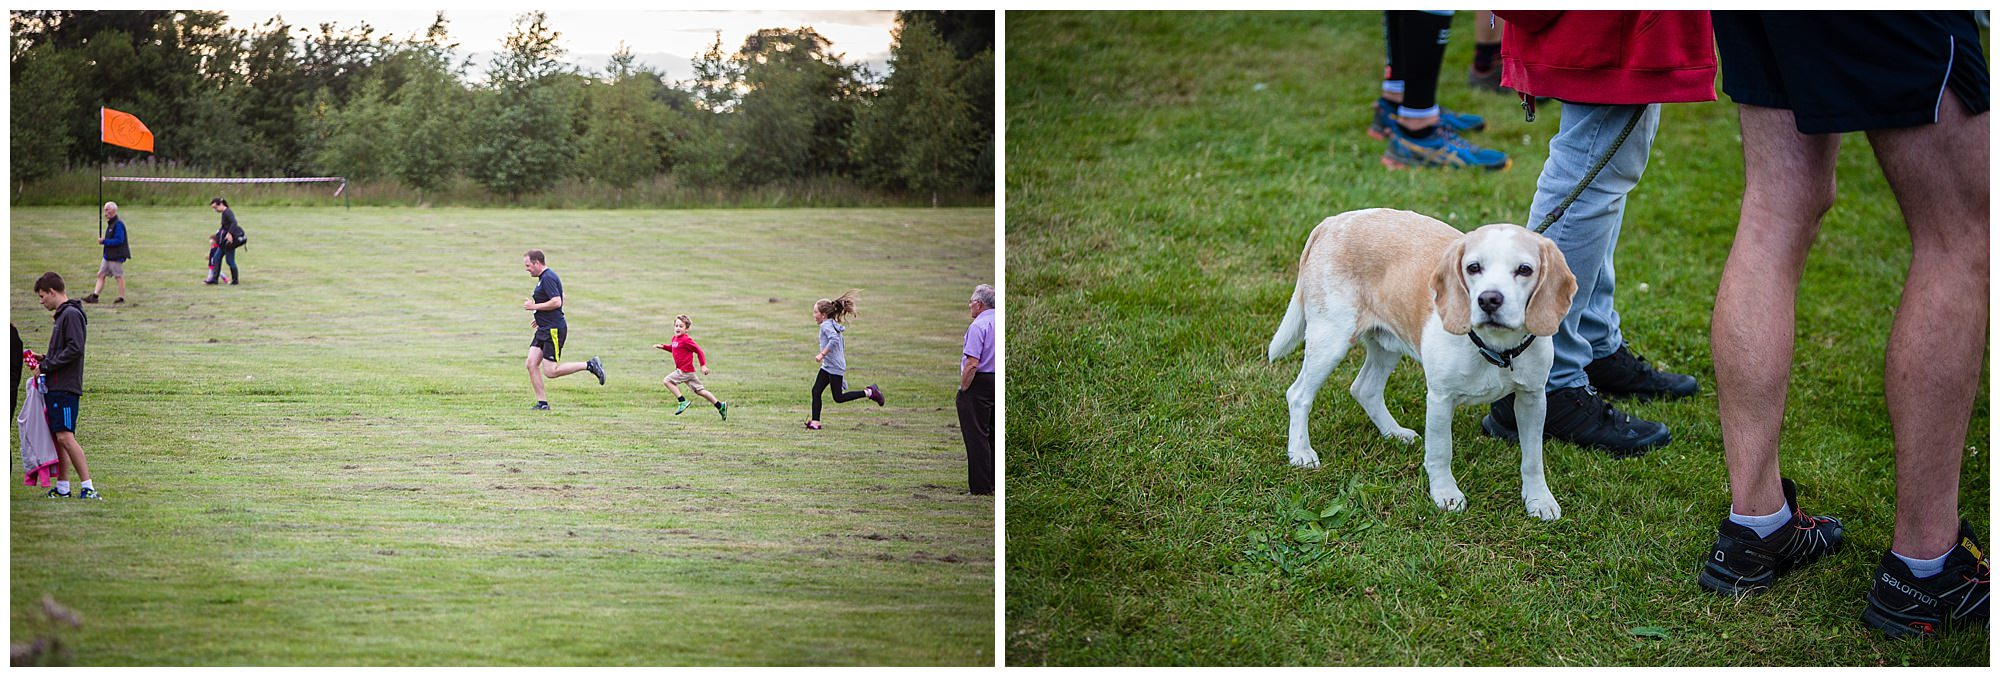 kids playing at whitchurch running event and dogs